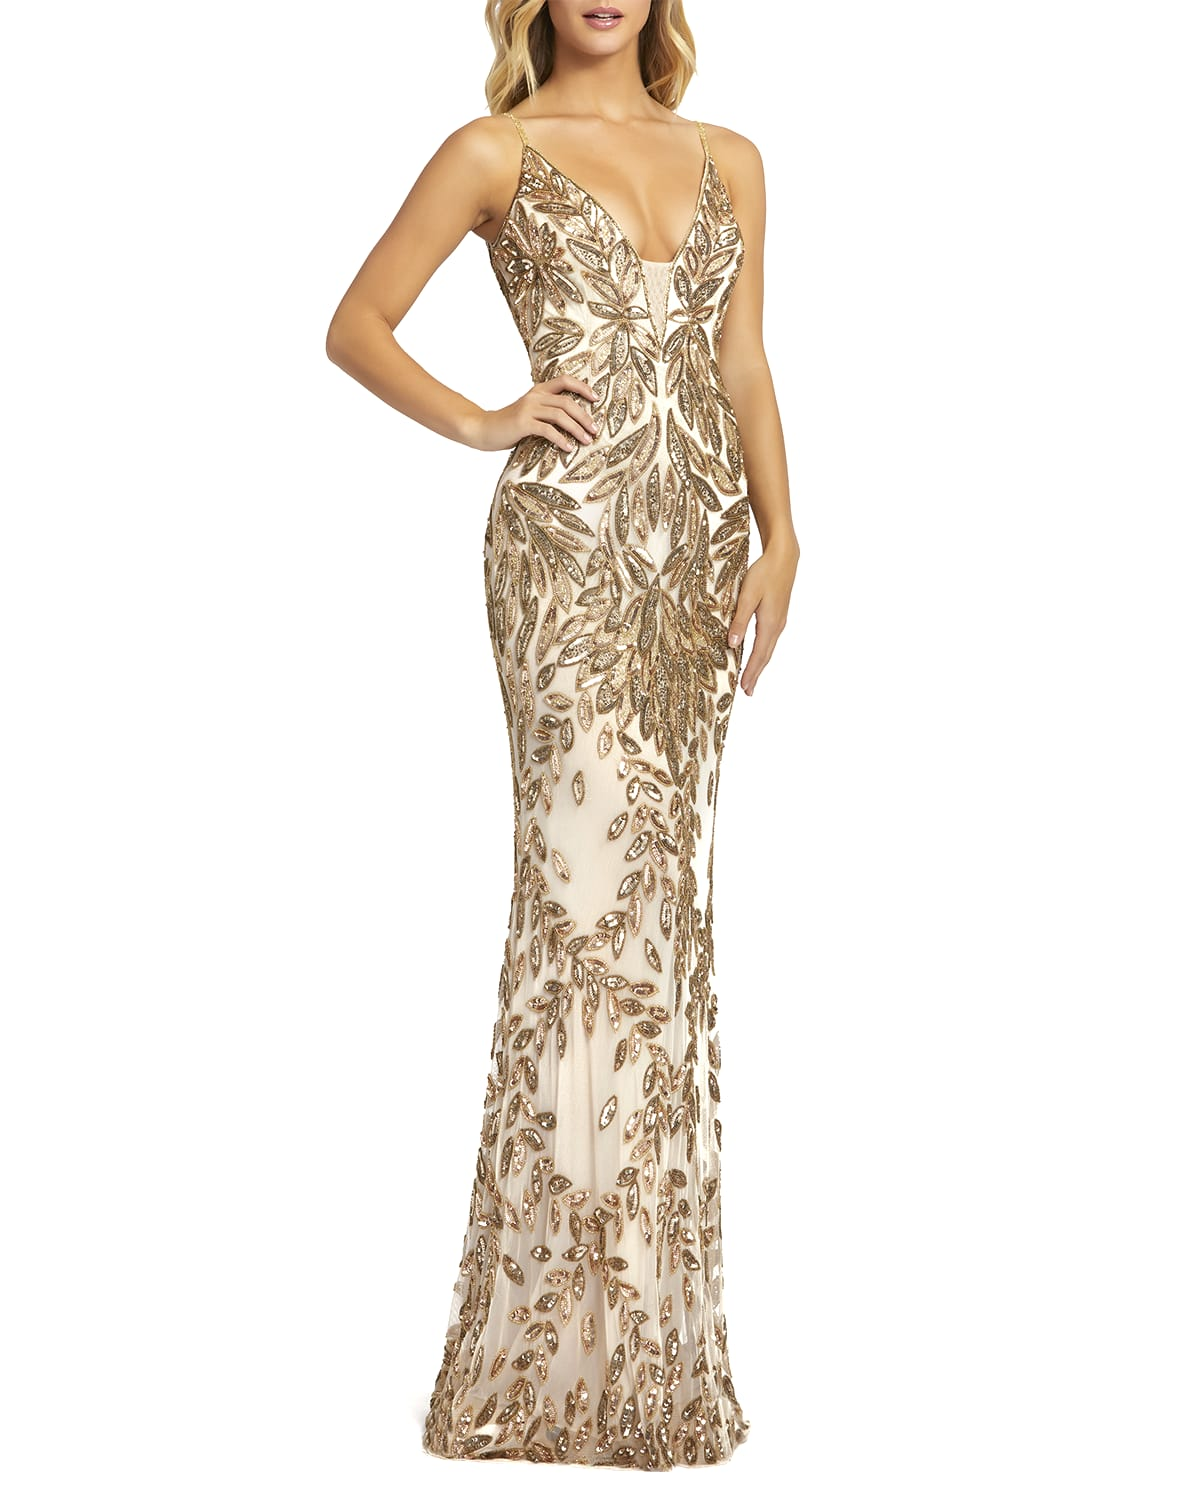 Sequin Leaf Plunging Sheath Gown